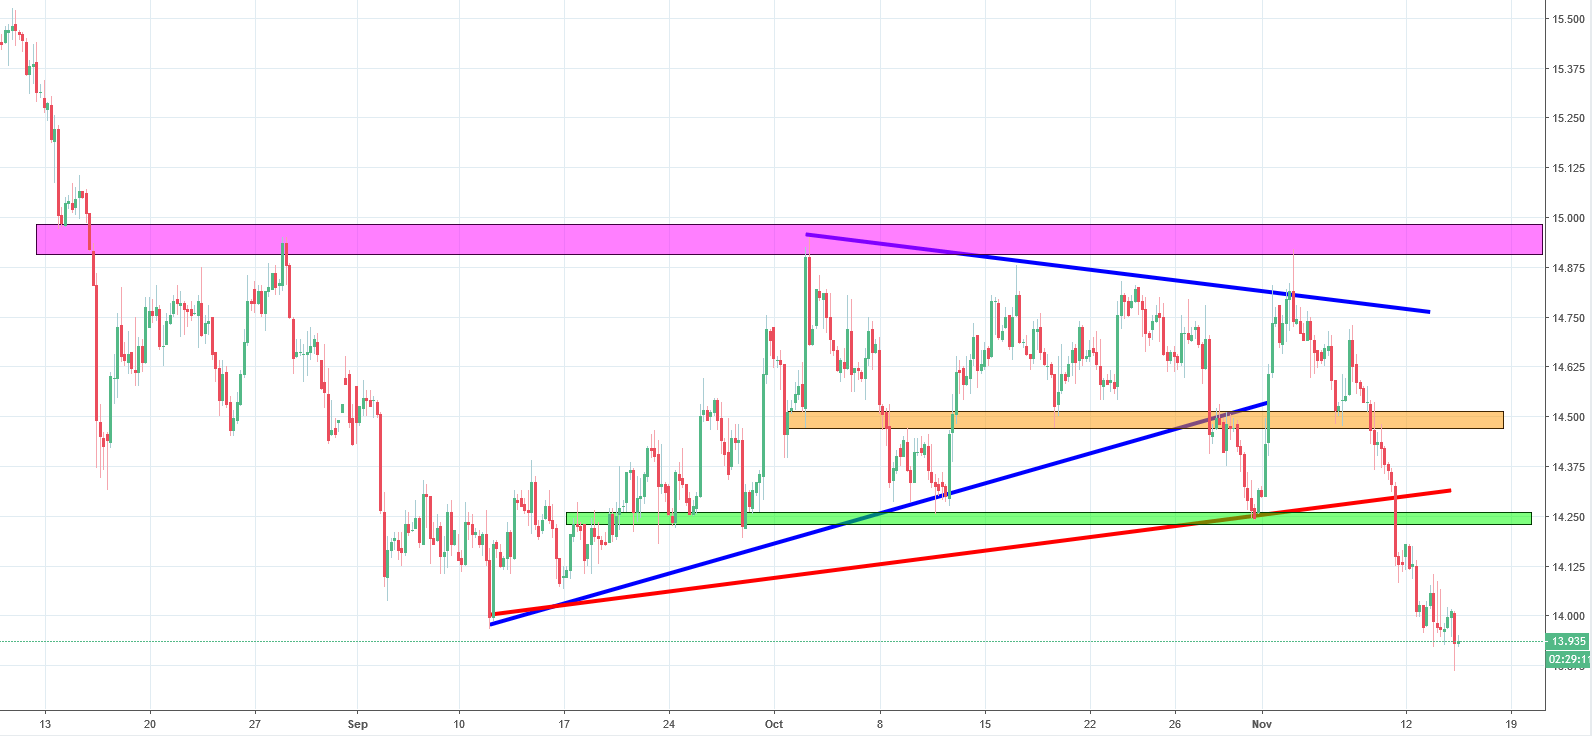 Silver Analysis - the price has set a clear direcition and it's not a good one